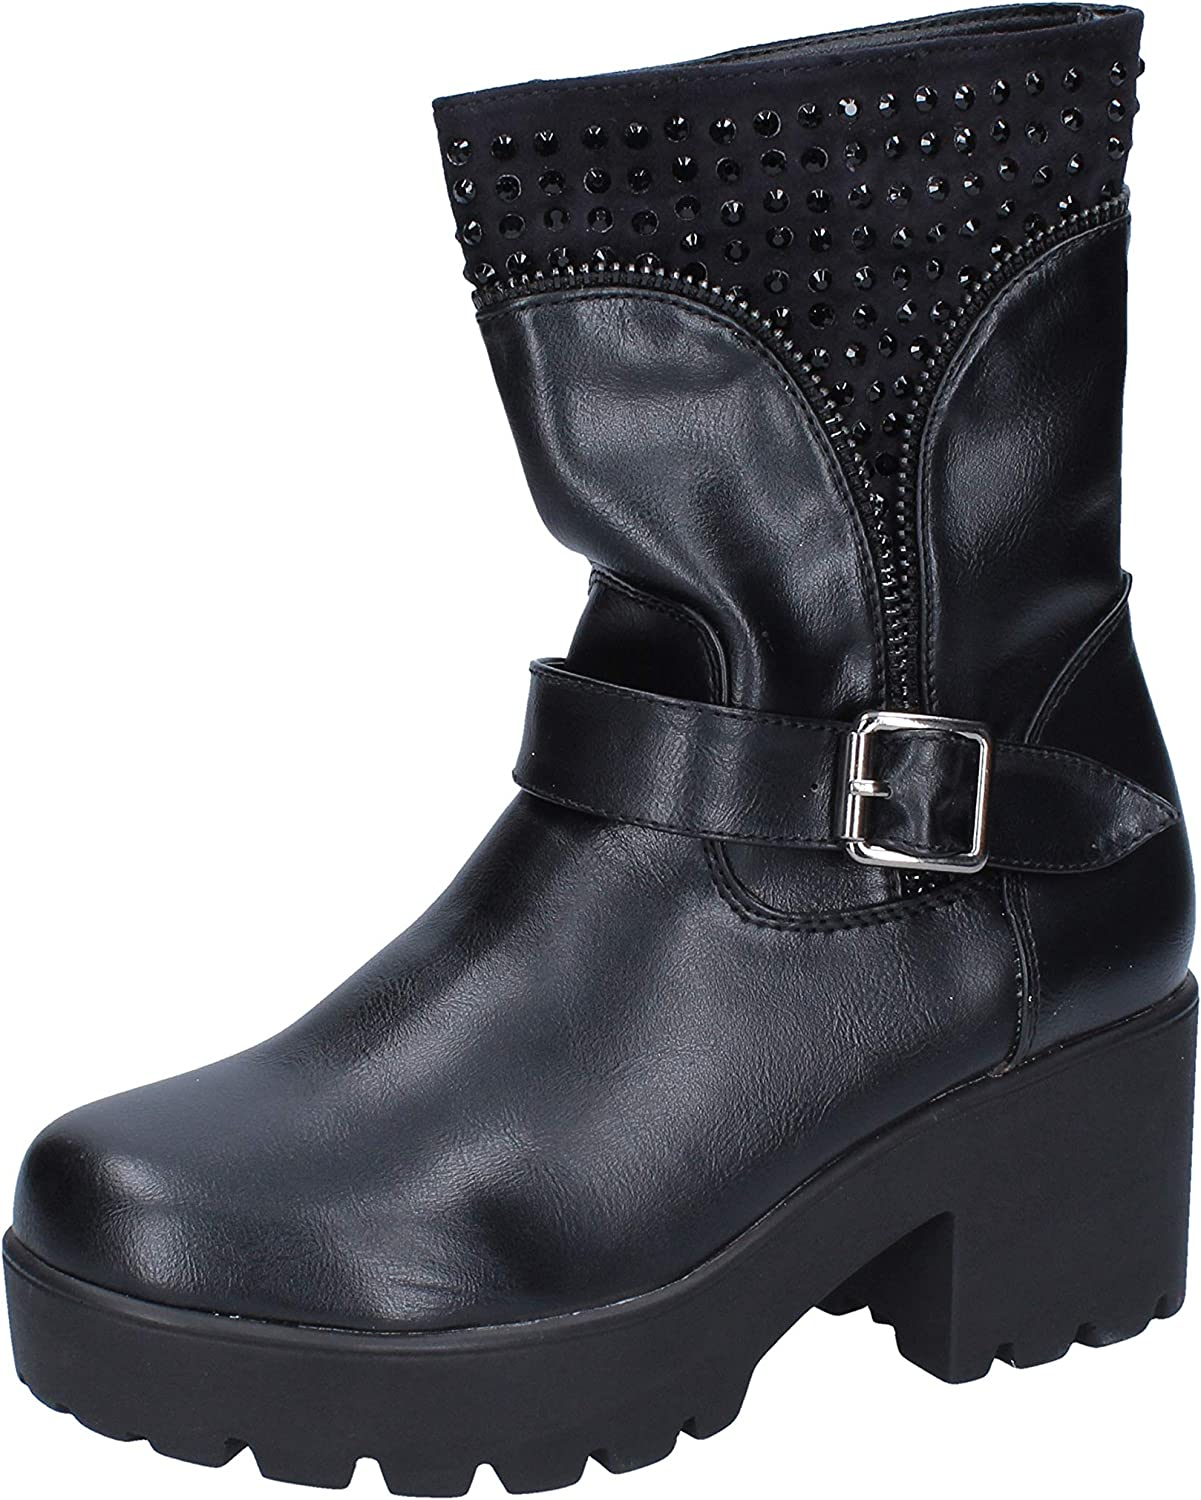 FRANCESCO MILANO Boots Womens Leather Black